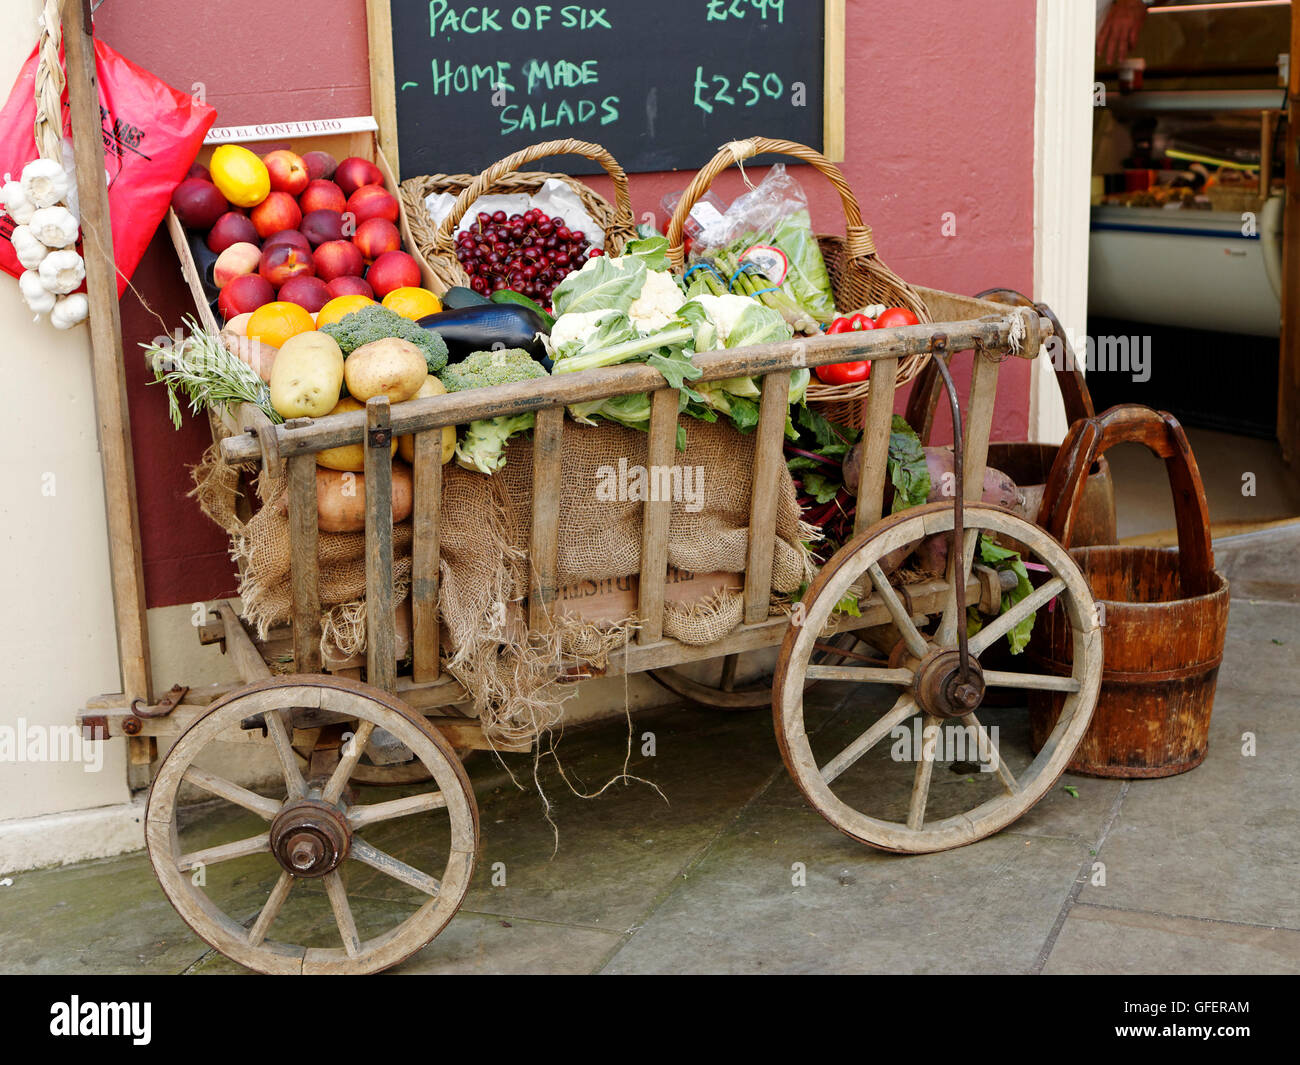 Fruit and vegetables displayed in an old wooden hand cart outside a small general stores